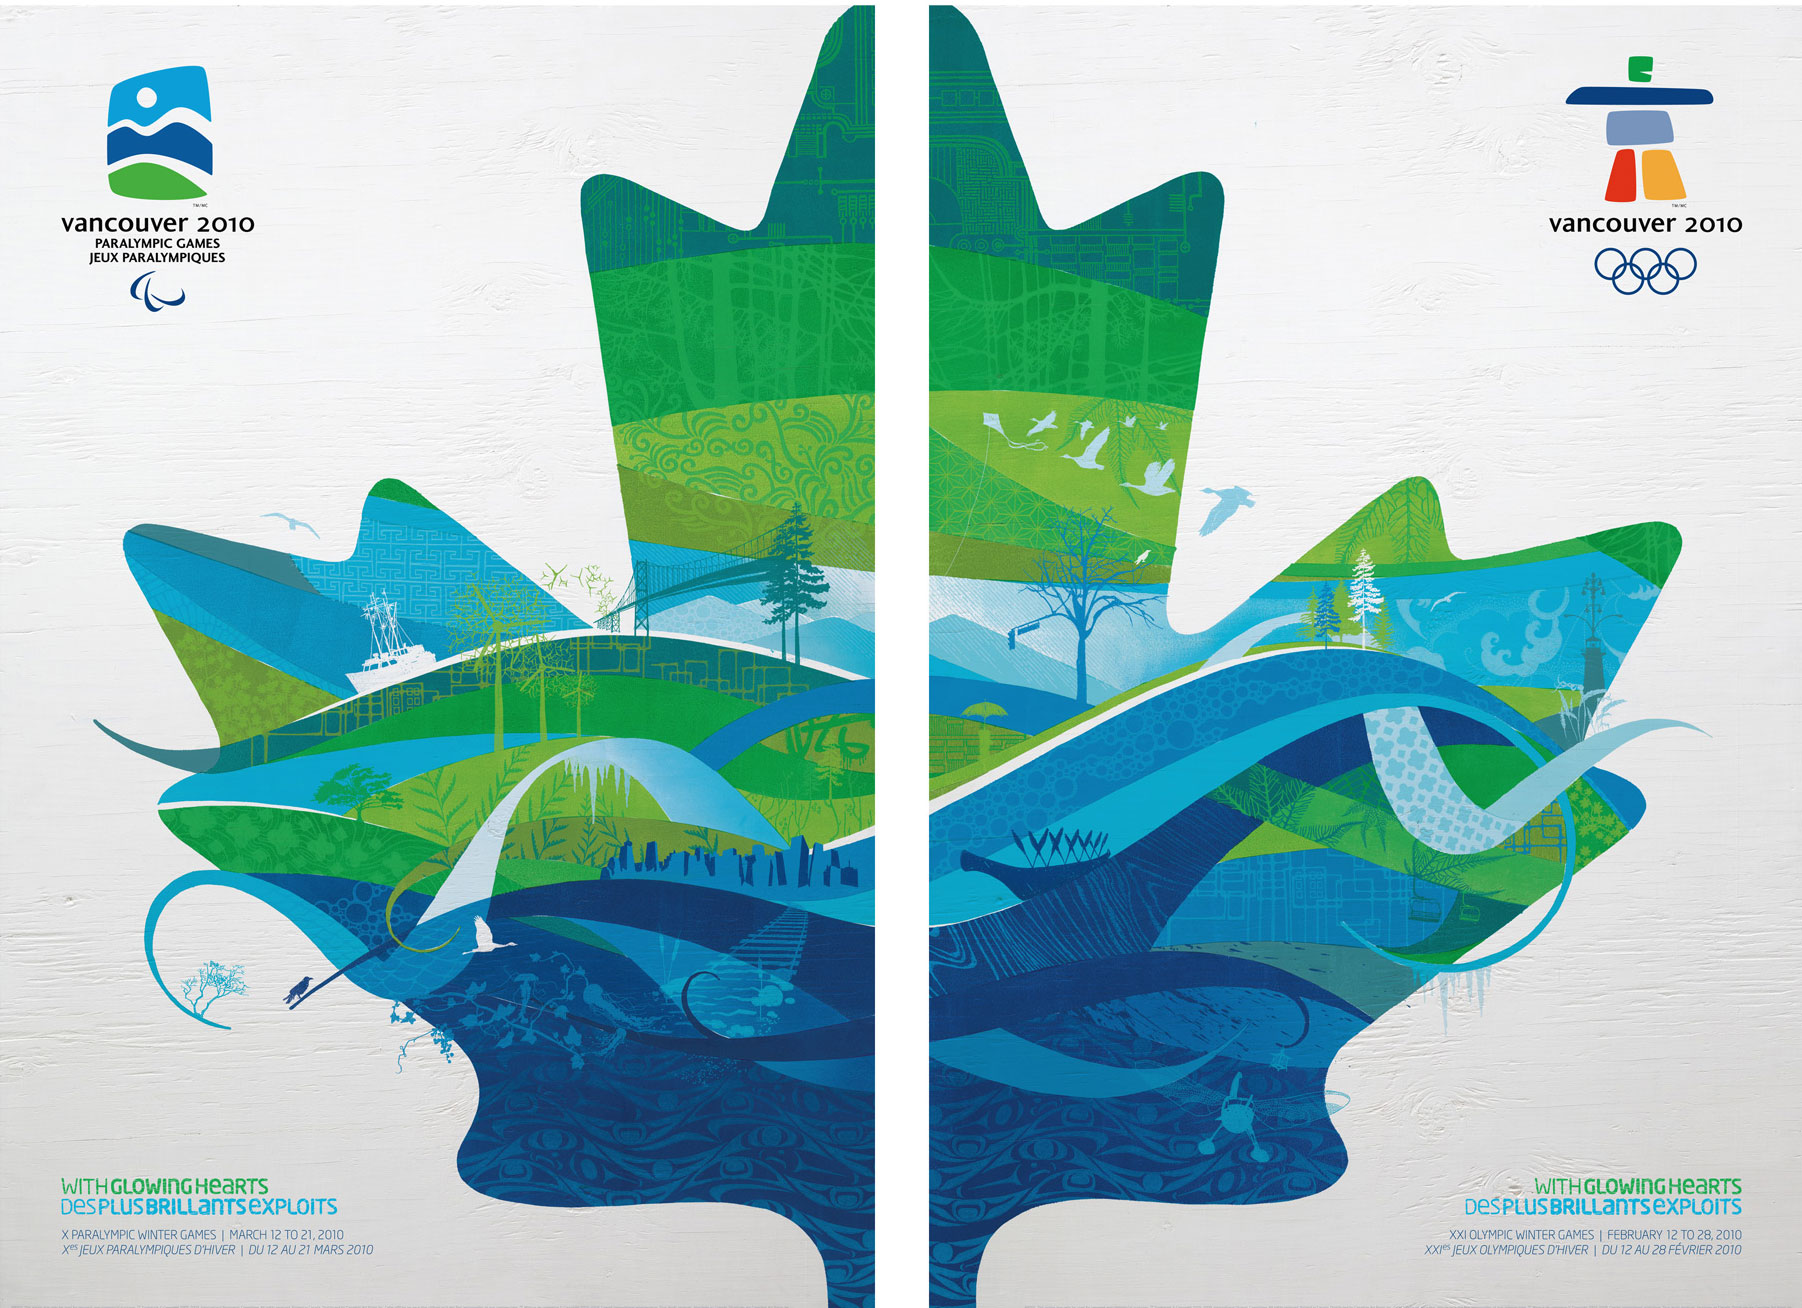 2010 Vancouver Olympics2